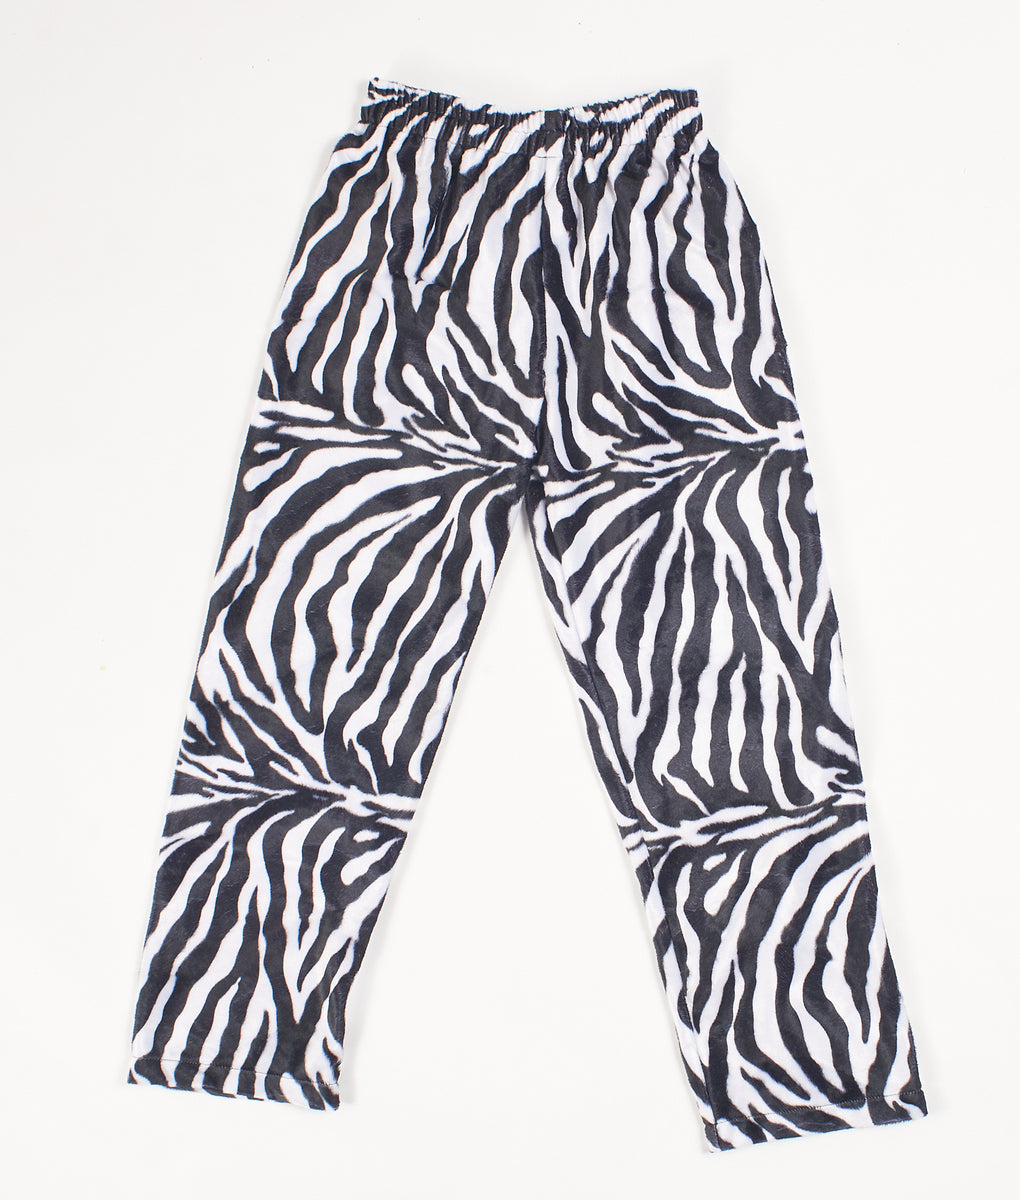 ZEBRA PARTY PANTS